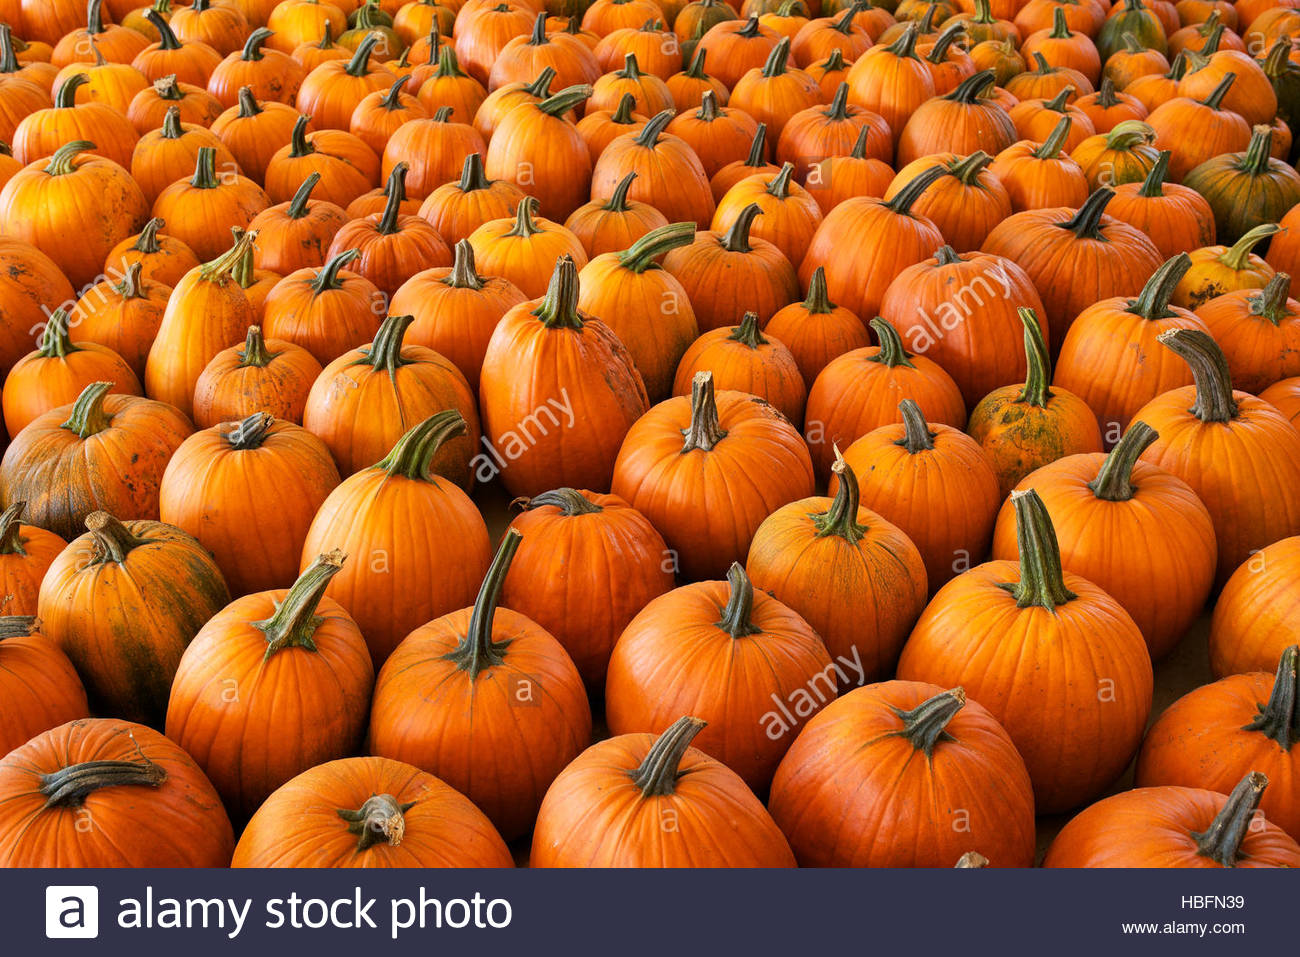 Pumpkins at a farm in Watertown, Wisconsin. - Stock Image